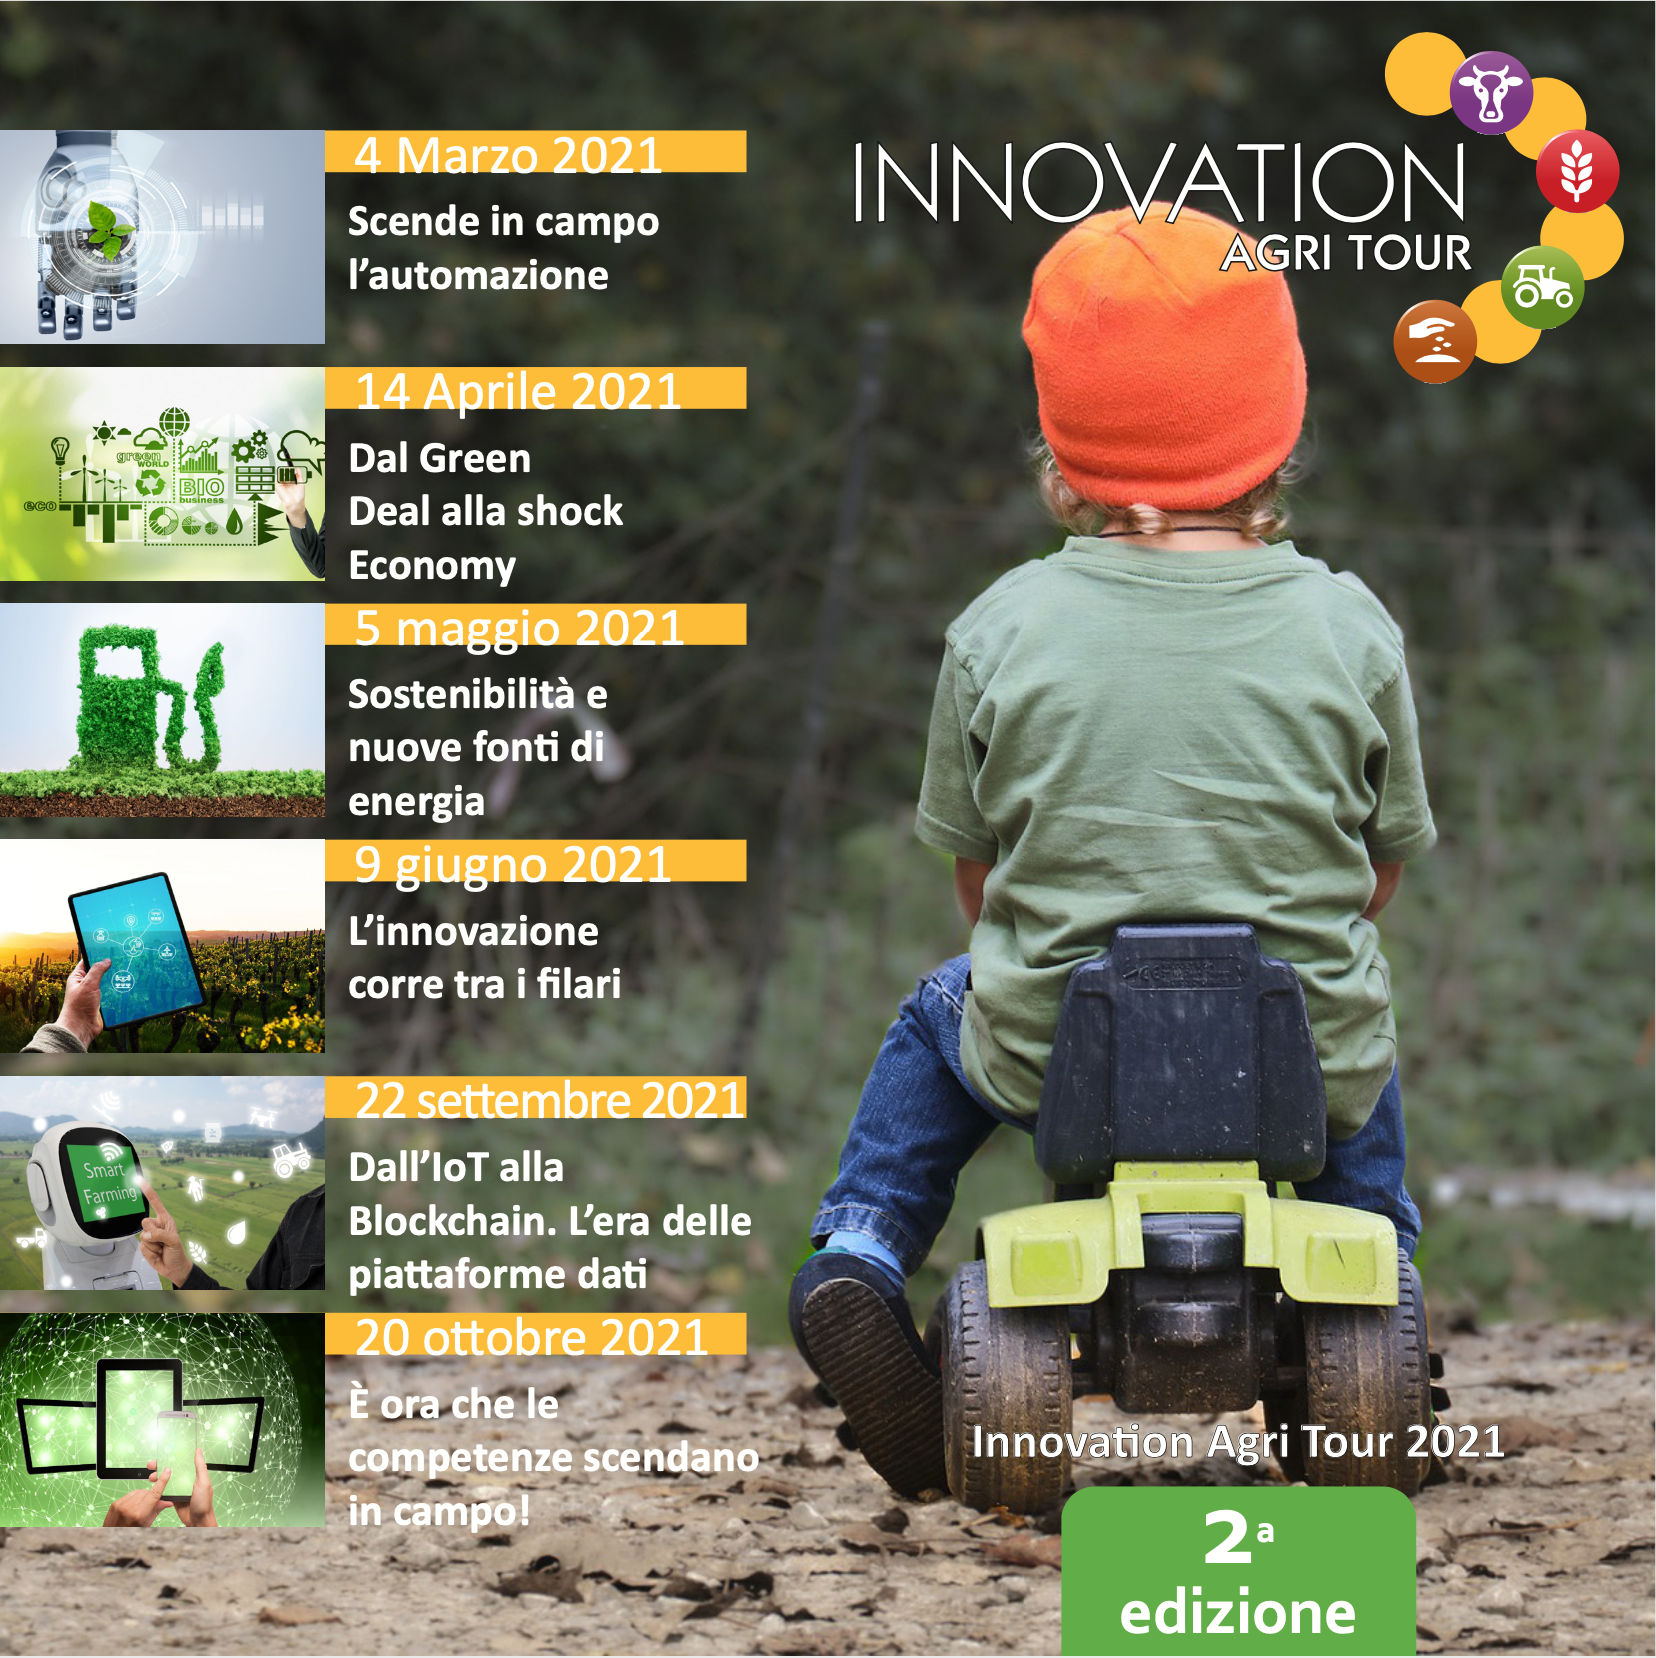 Innovation Agri Tour 2021